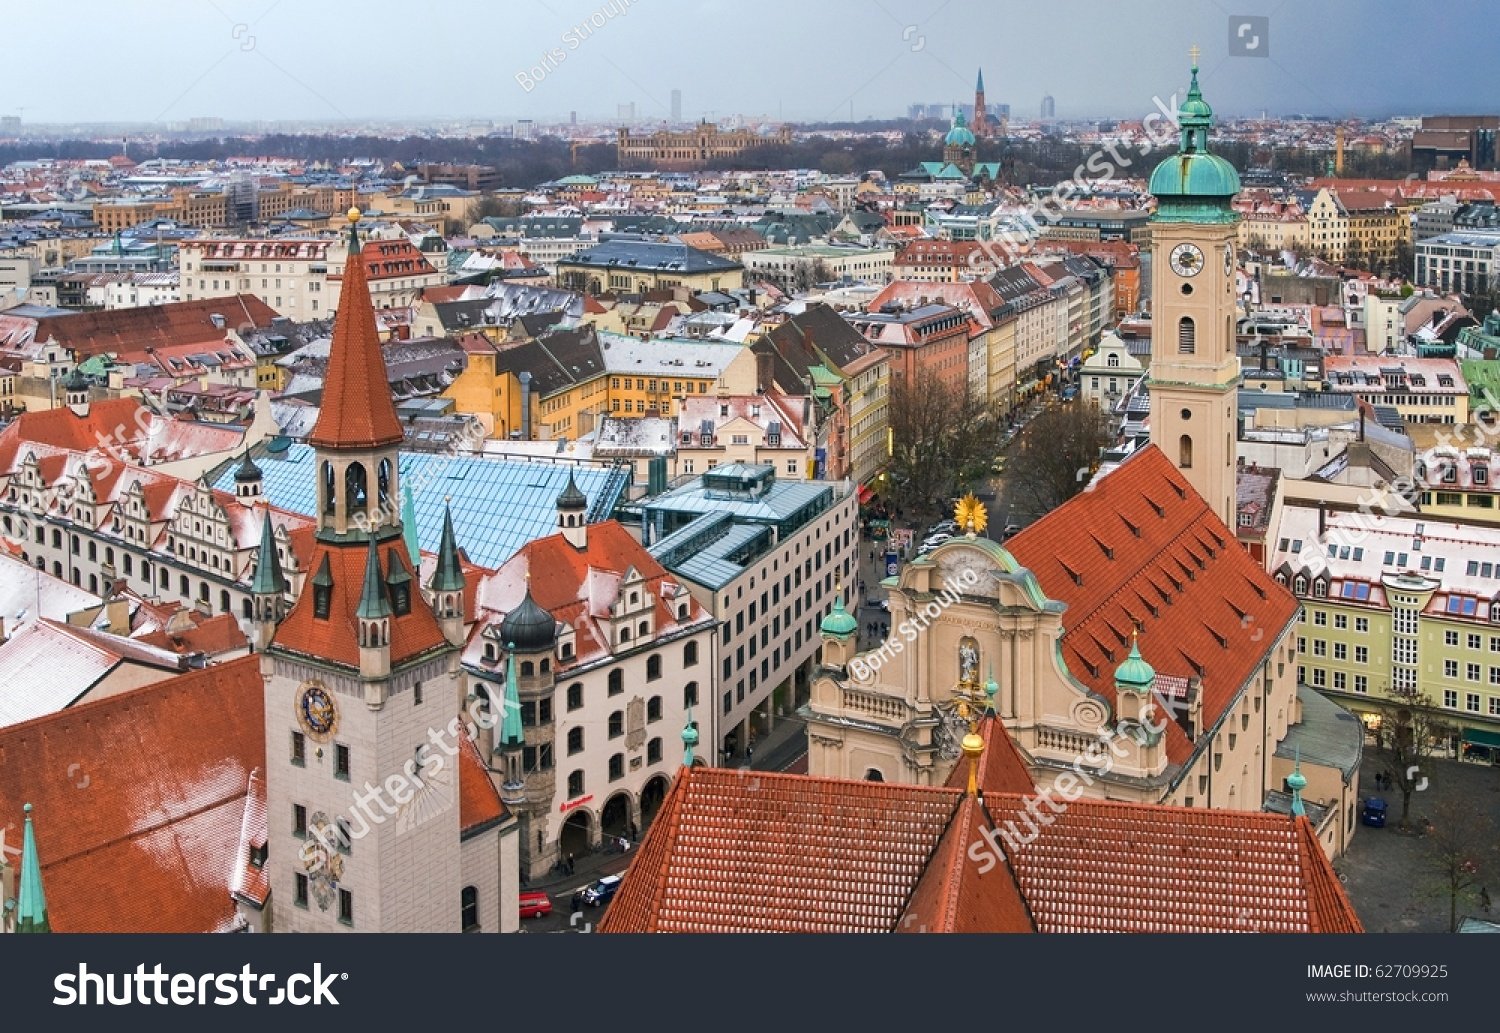 View Over Red Roofs Of Old City Of Munich, Beer Capital Of Germany